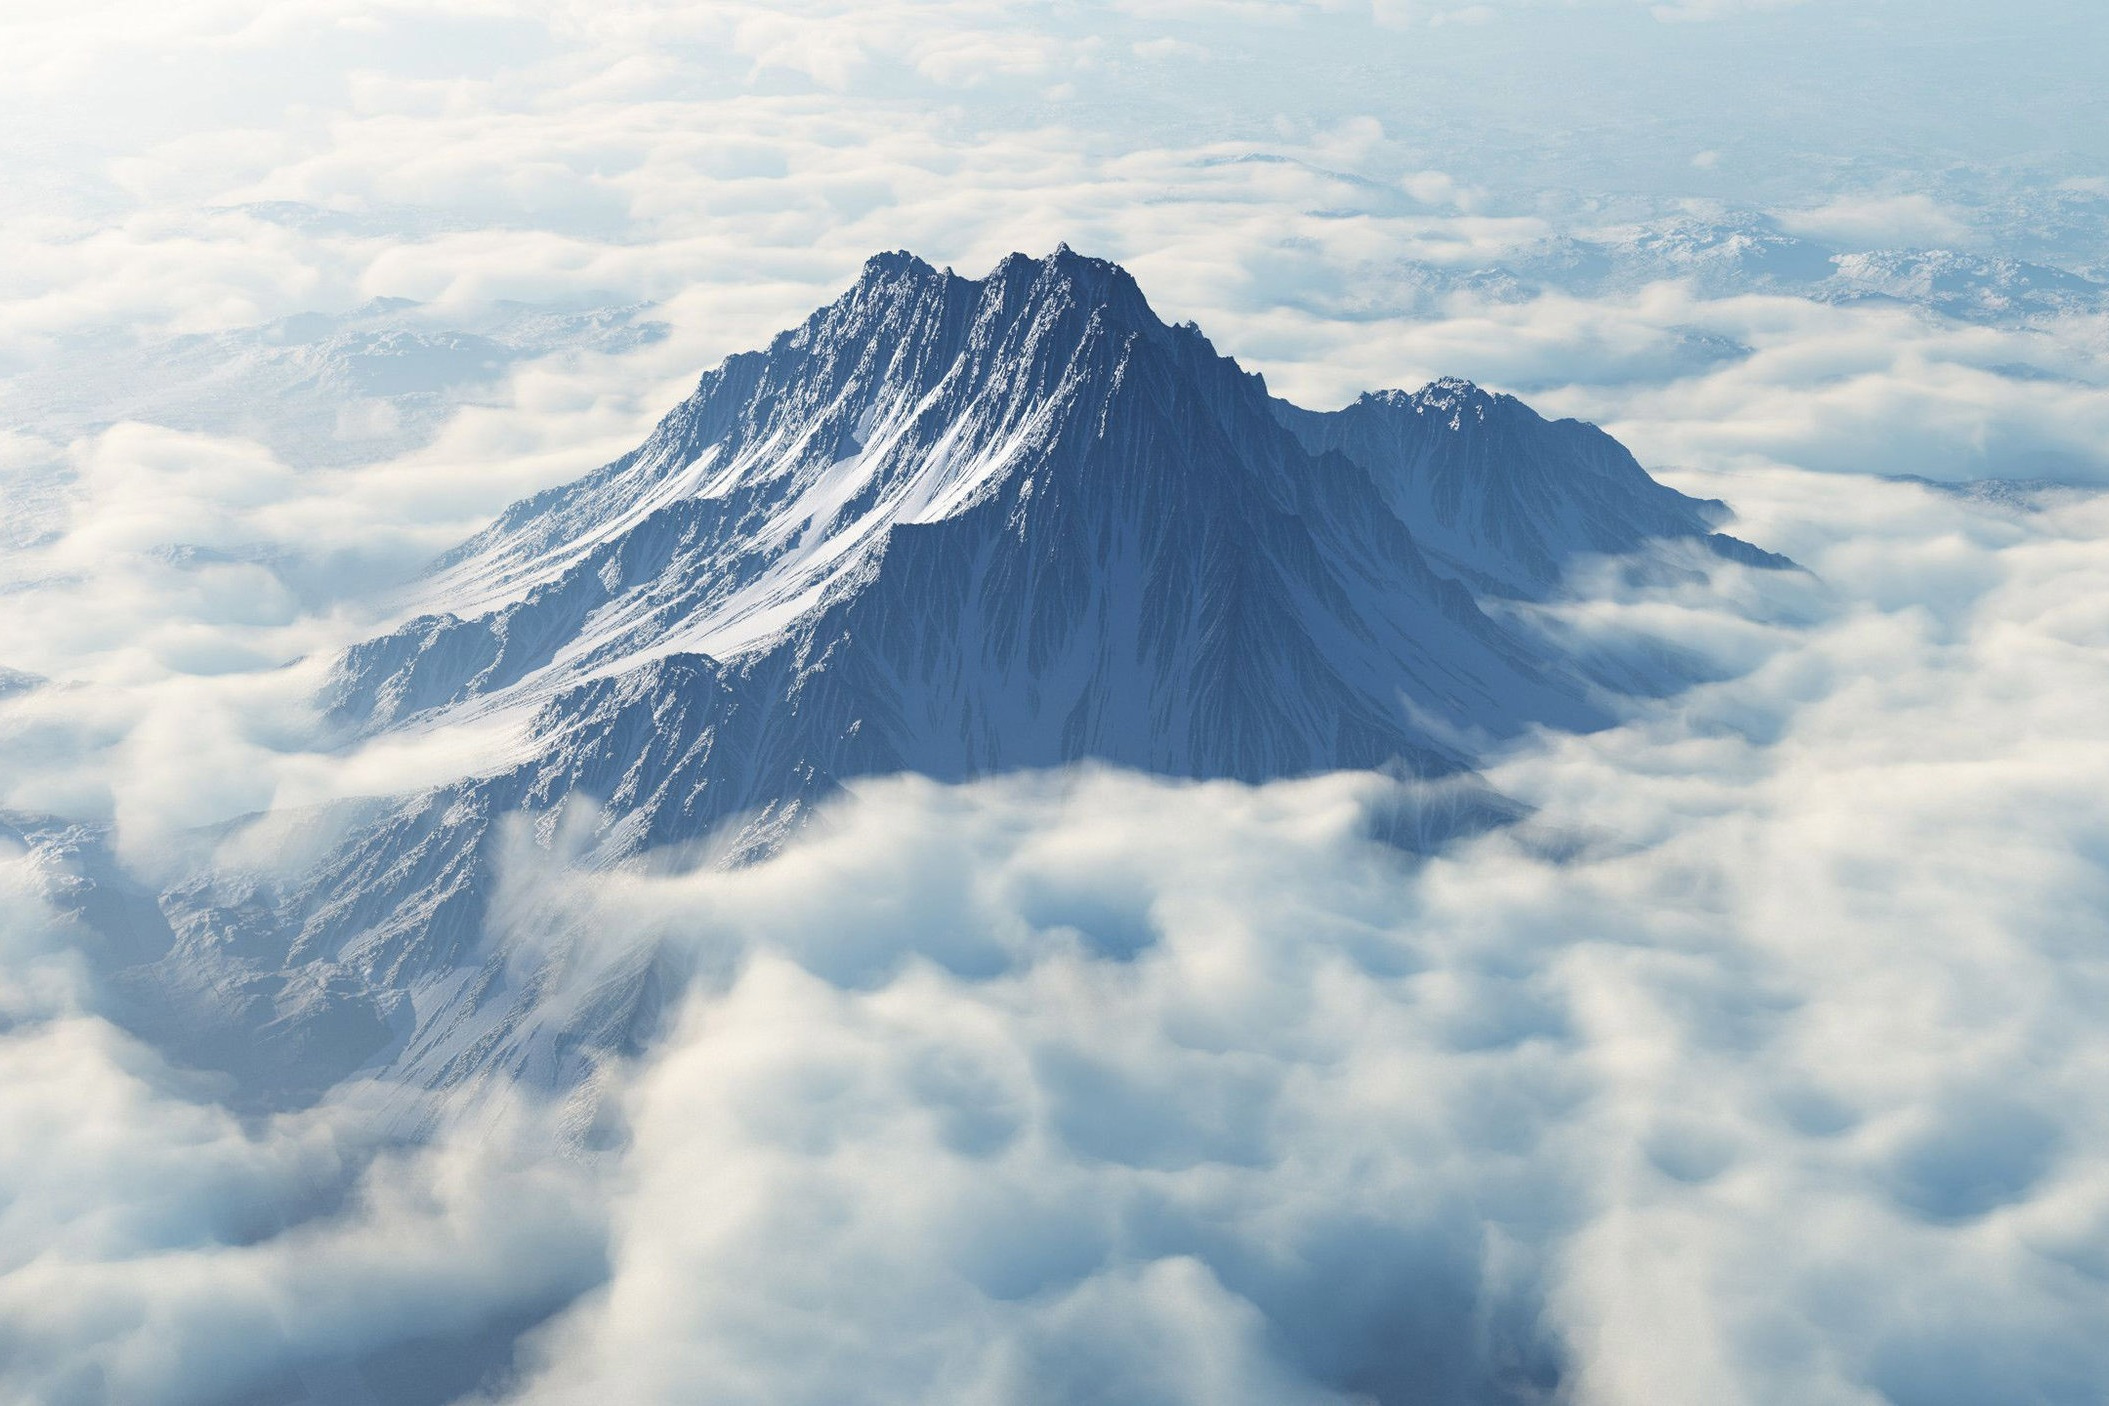 Mountain Meditation… - The mountain is a majestic symbol of tolerance and equanimity in the face of change. This guided meditation can be especially helpful during difficult times in life. Like a mountain, we can cultivate poise and resilience. Practice your stable posture and build up your ability to sit still and serene while enjoying inner repose.